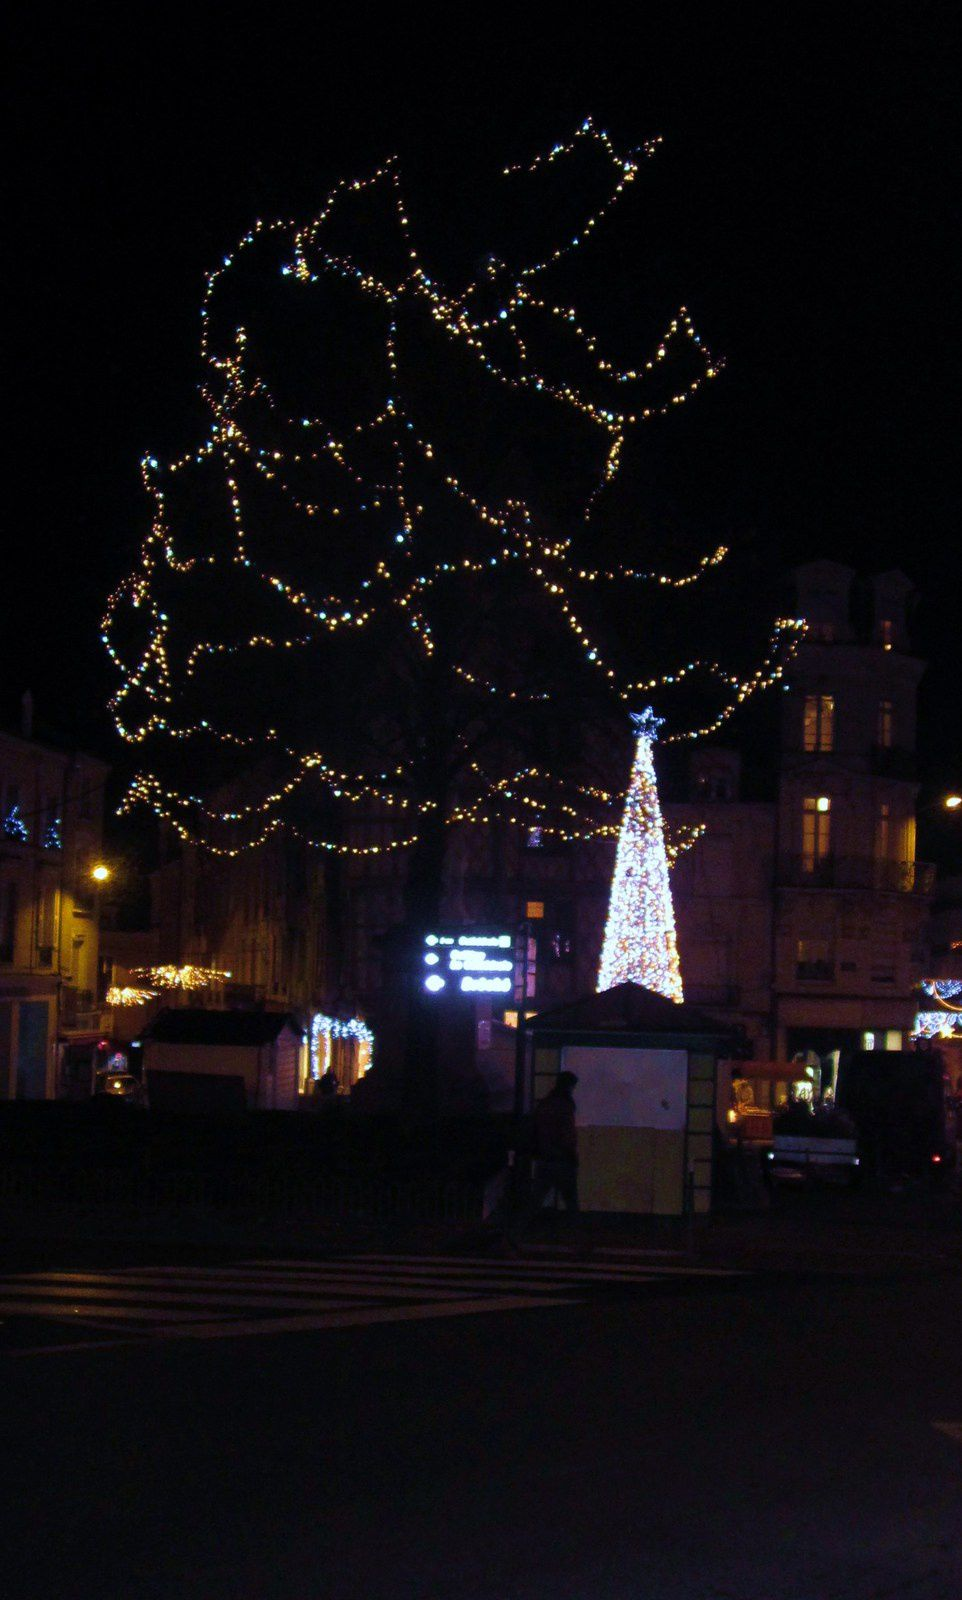 NOËL PLACE FREPEL ANGERS